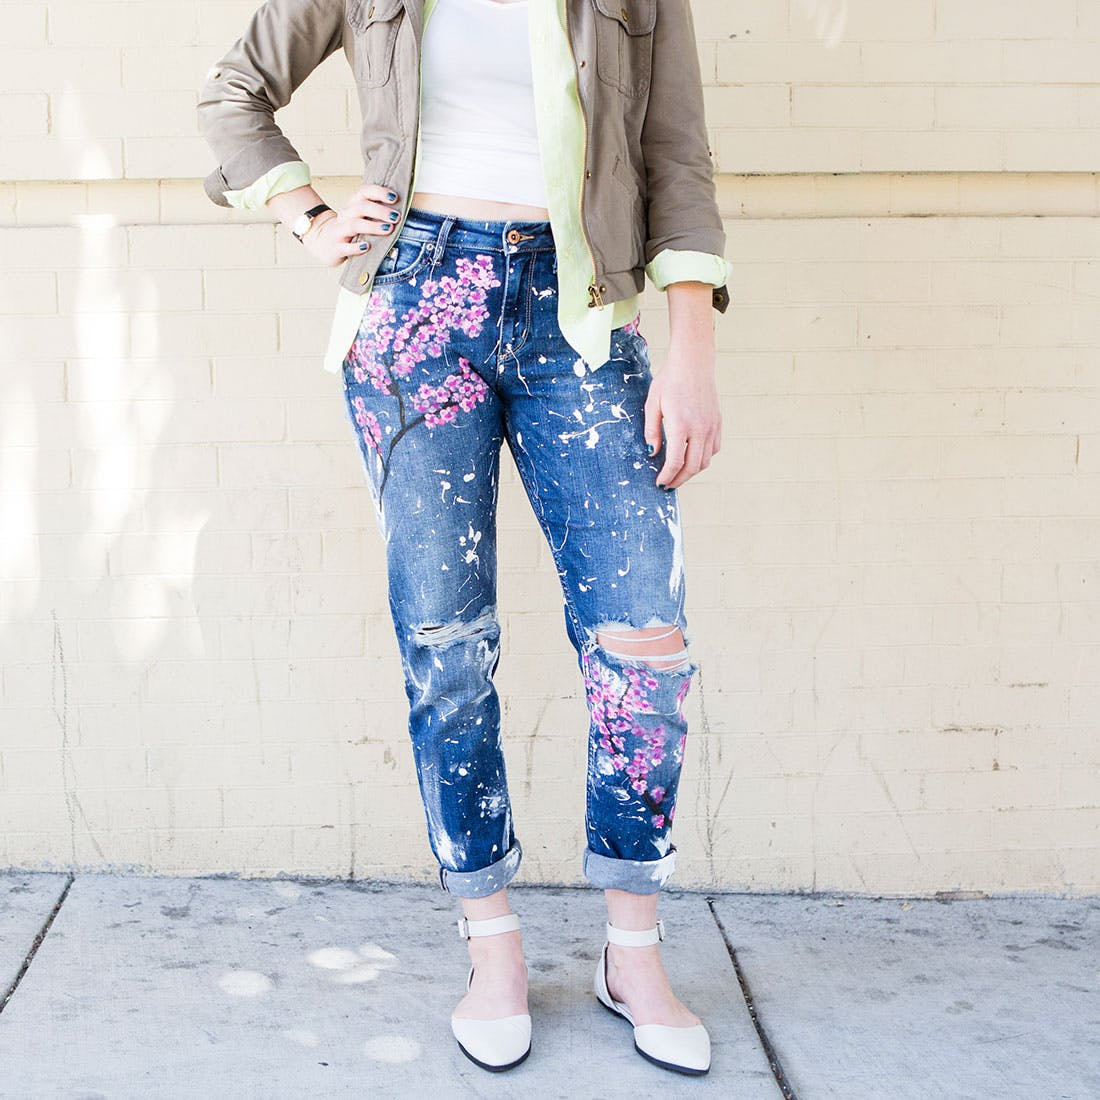 Drawn jeans cherry blossom + to How $500